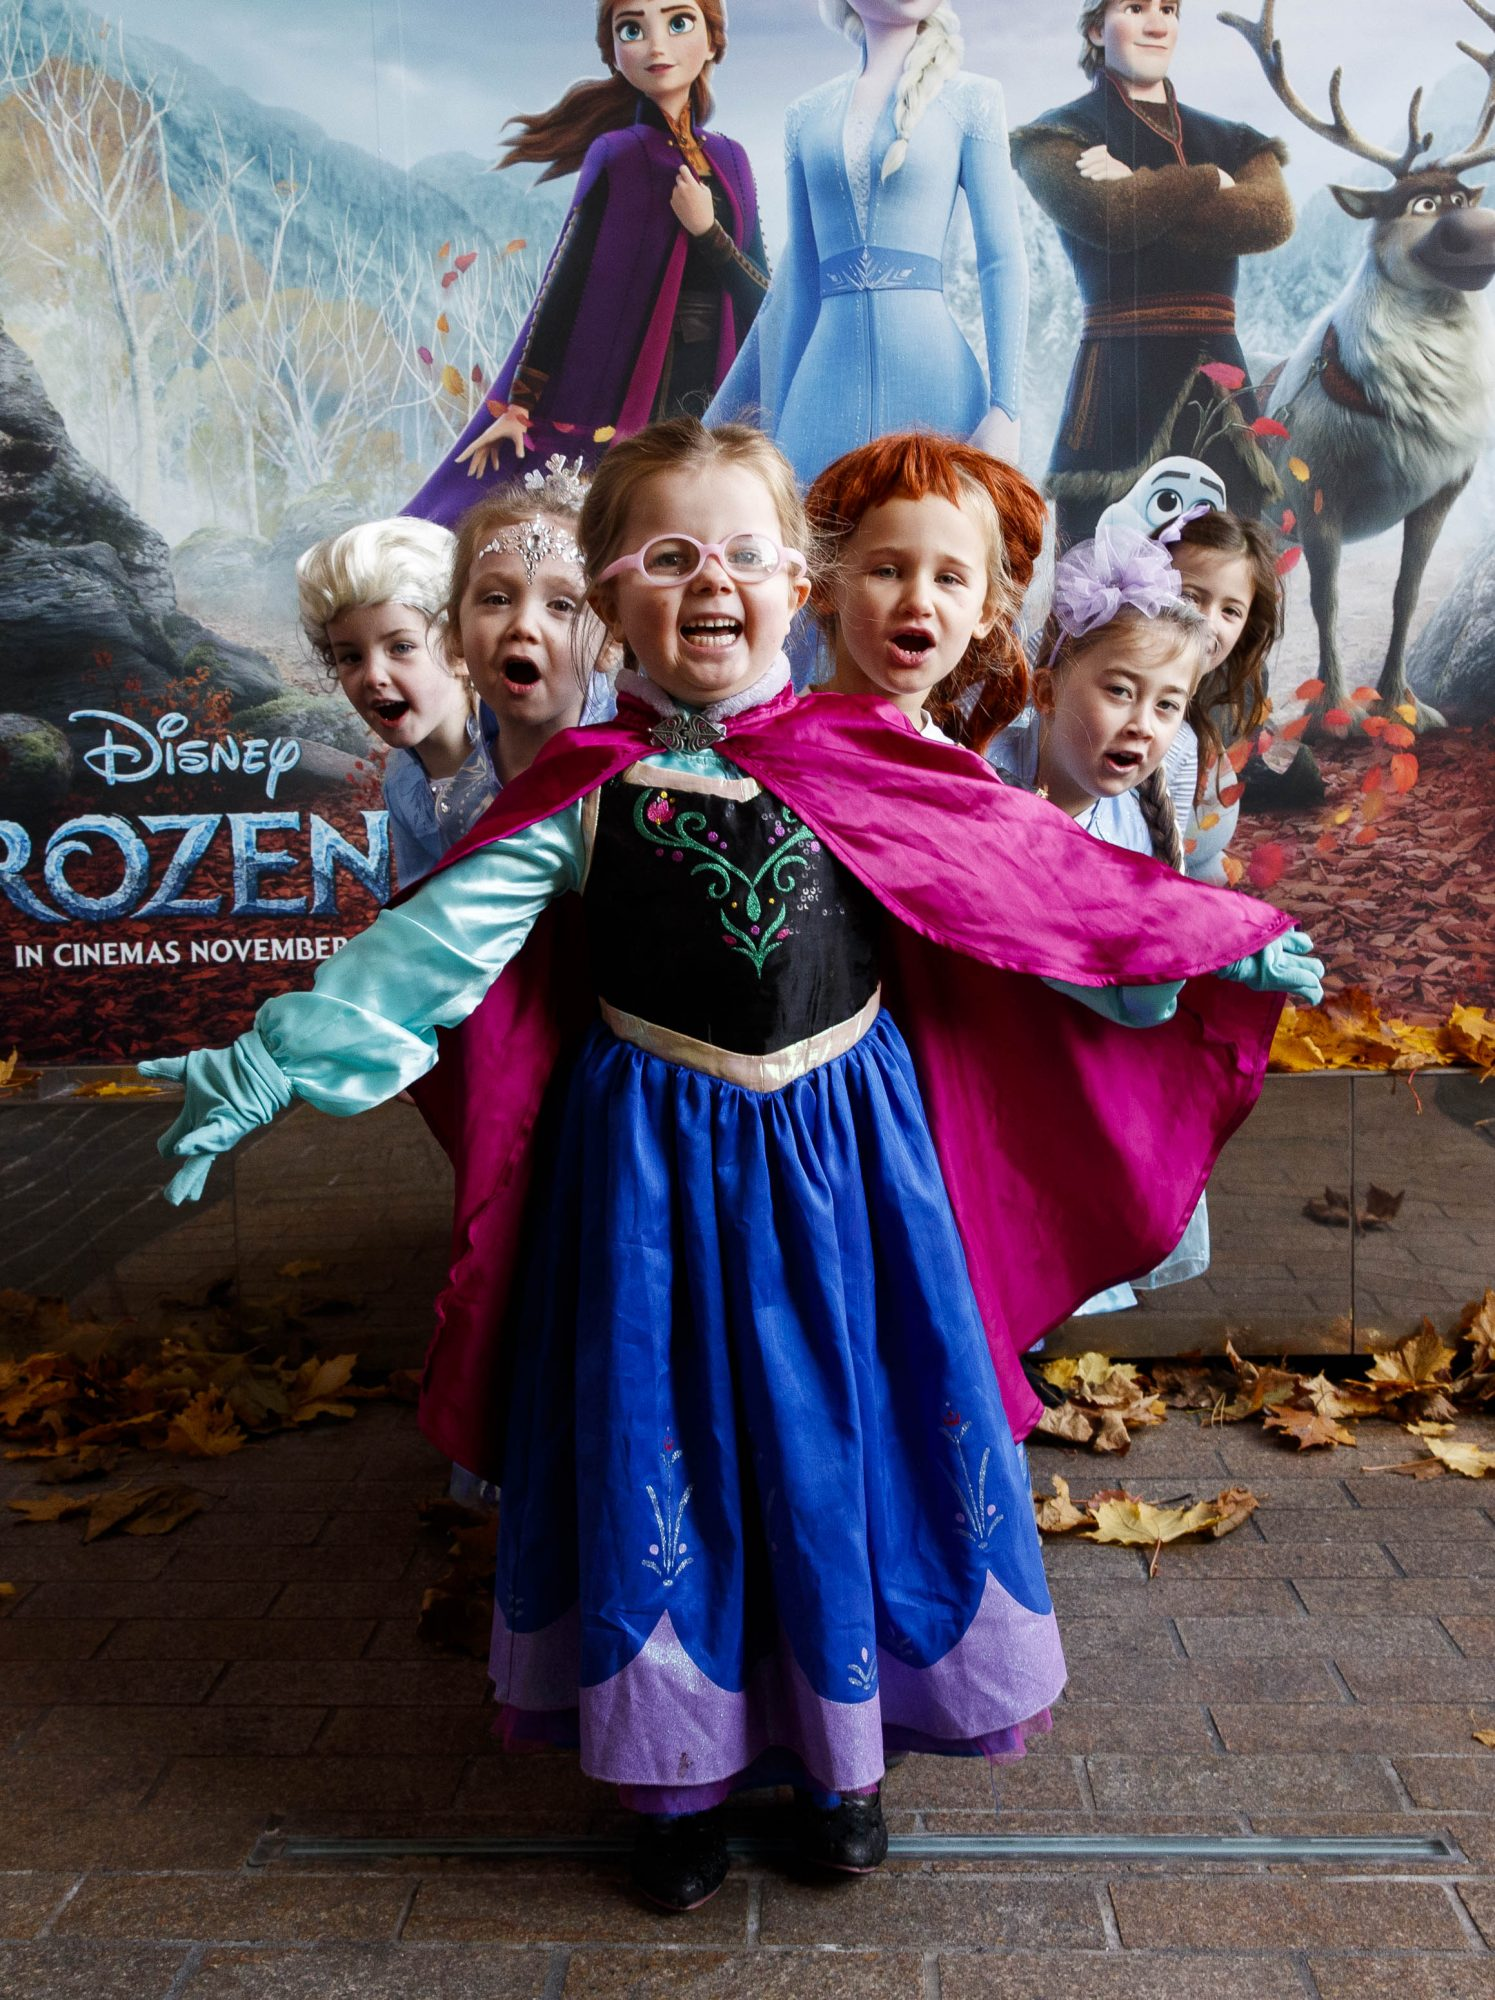 """Little Elsa's Molly Younger (4), Alanah Foran (4), Lauren Rose McDonald (4), Molly Smith (5) Keeelan Foley (5) Maddie Blake (6) waiting patiently for the doors to open at the special preview screening of Disney's """"Frozen 2"""" at the Light House Cinema, Dublin.  Picture Andres Poveda"""